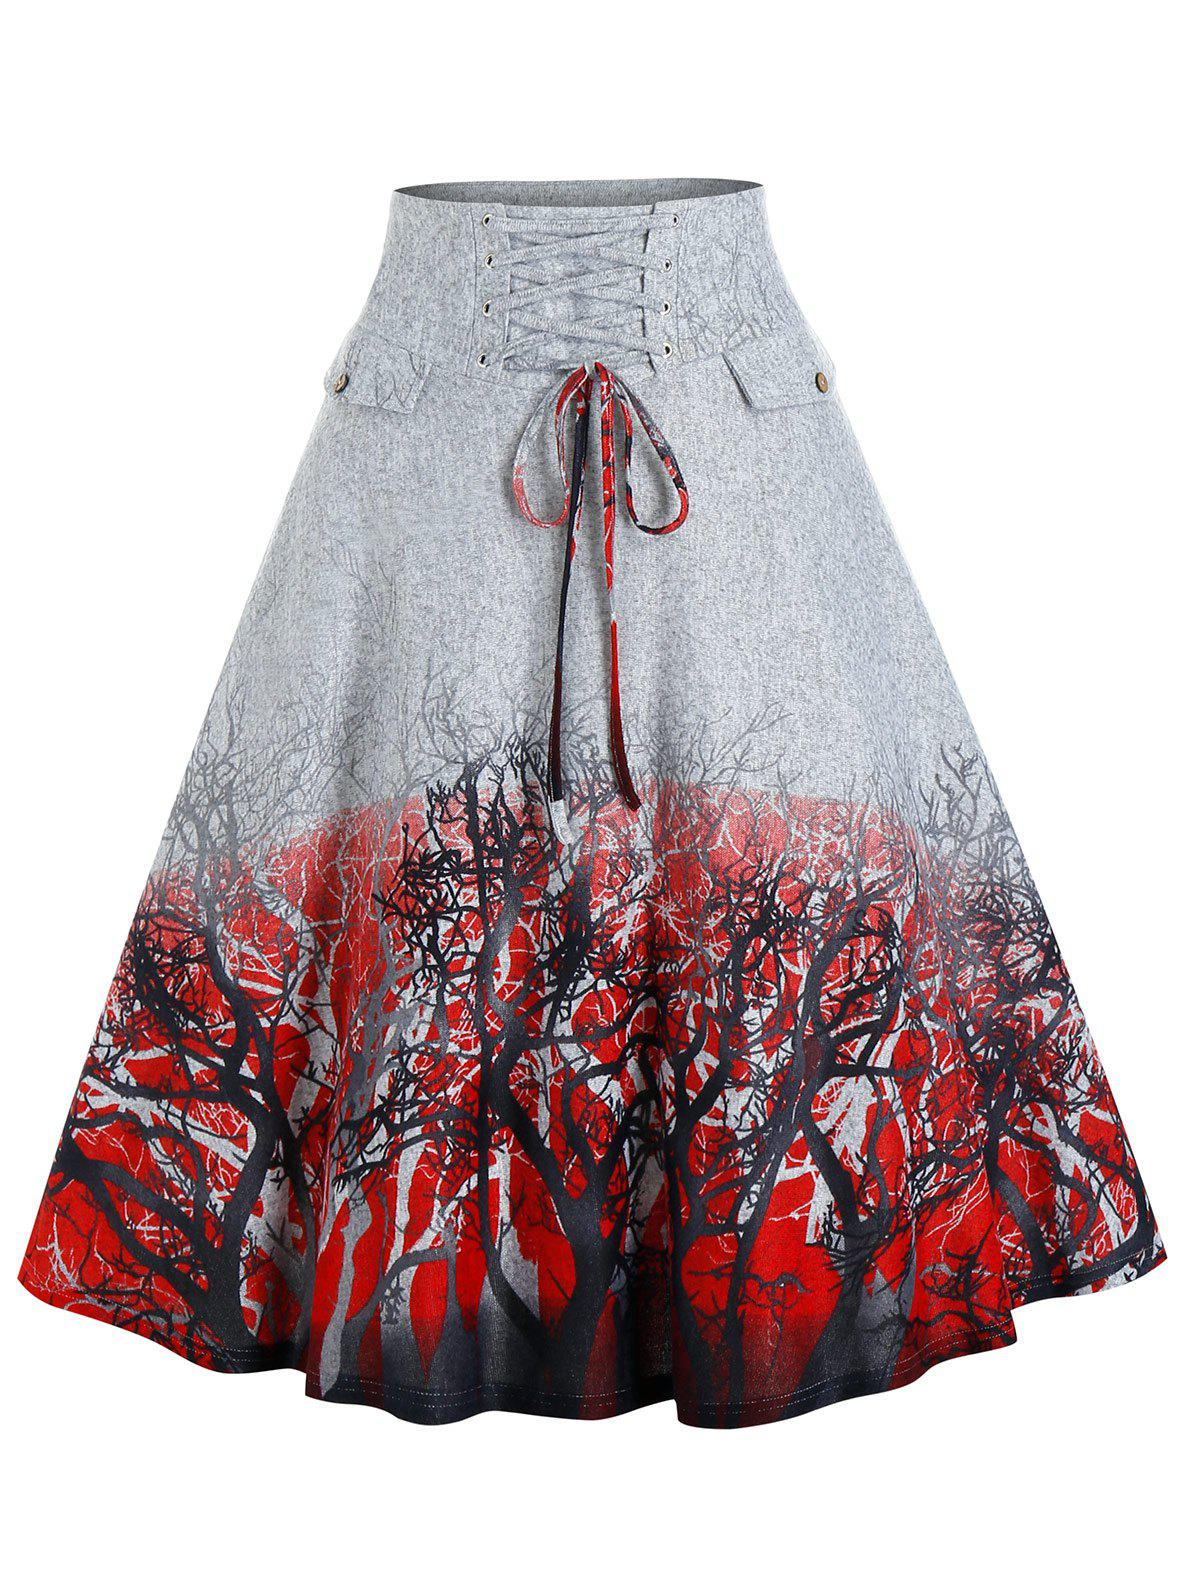 Trees Print Lace-up Front Skirt - GRAY XL